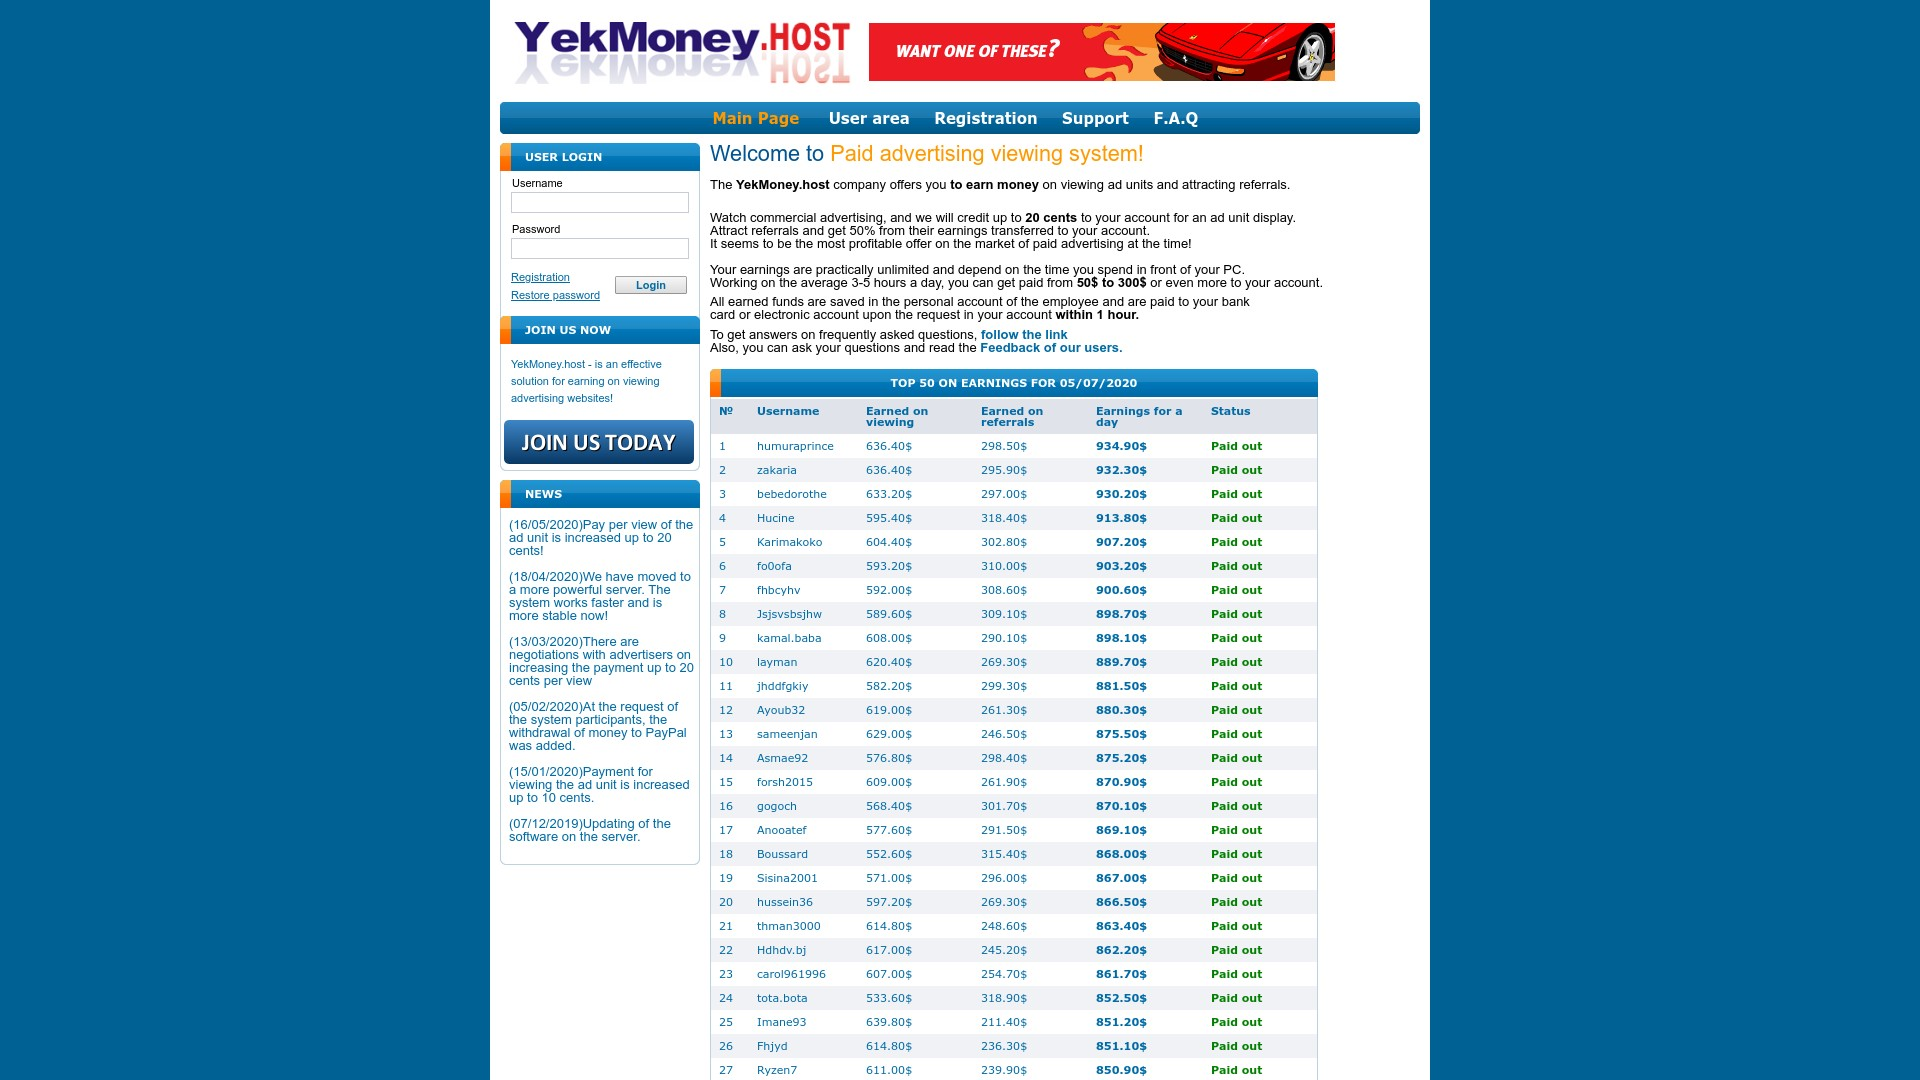 Is Yekmoney a Scam Work-From-Home Website?